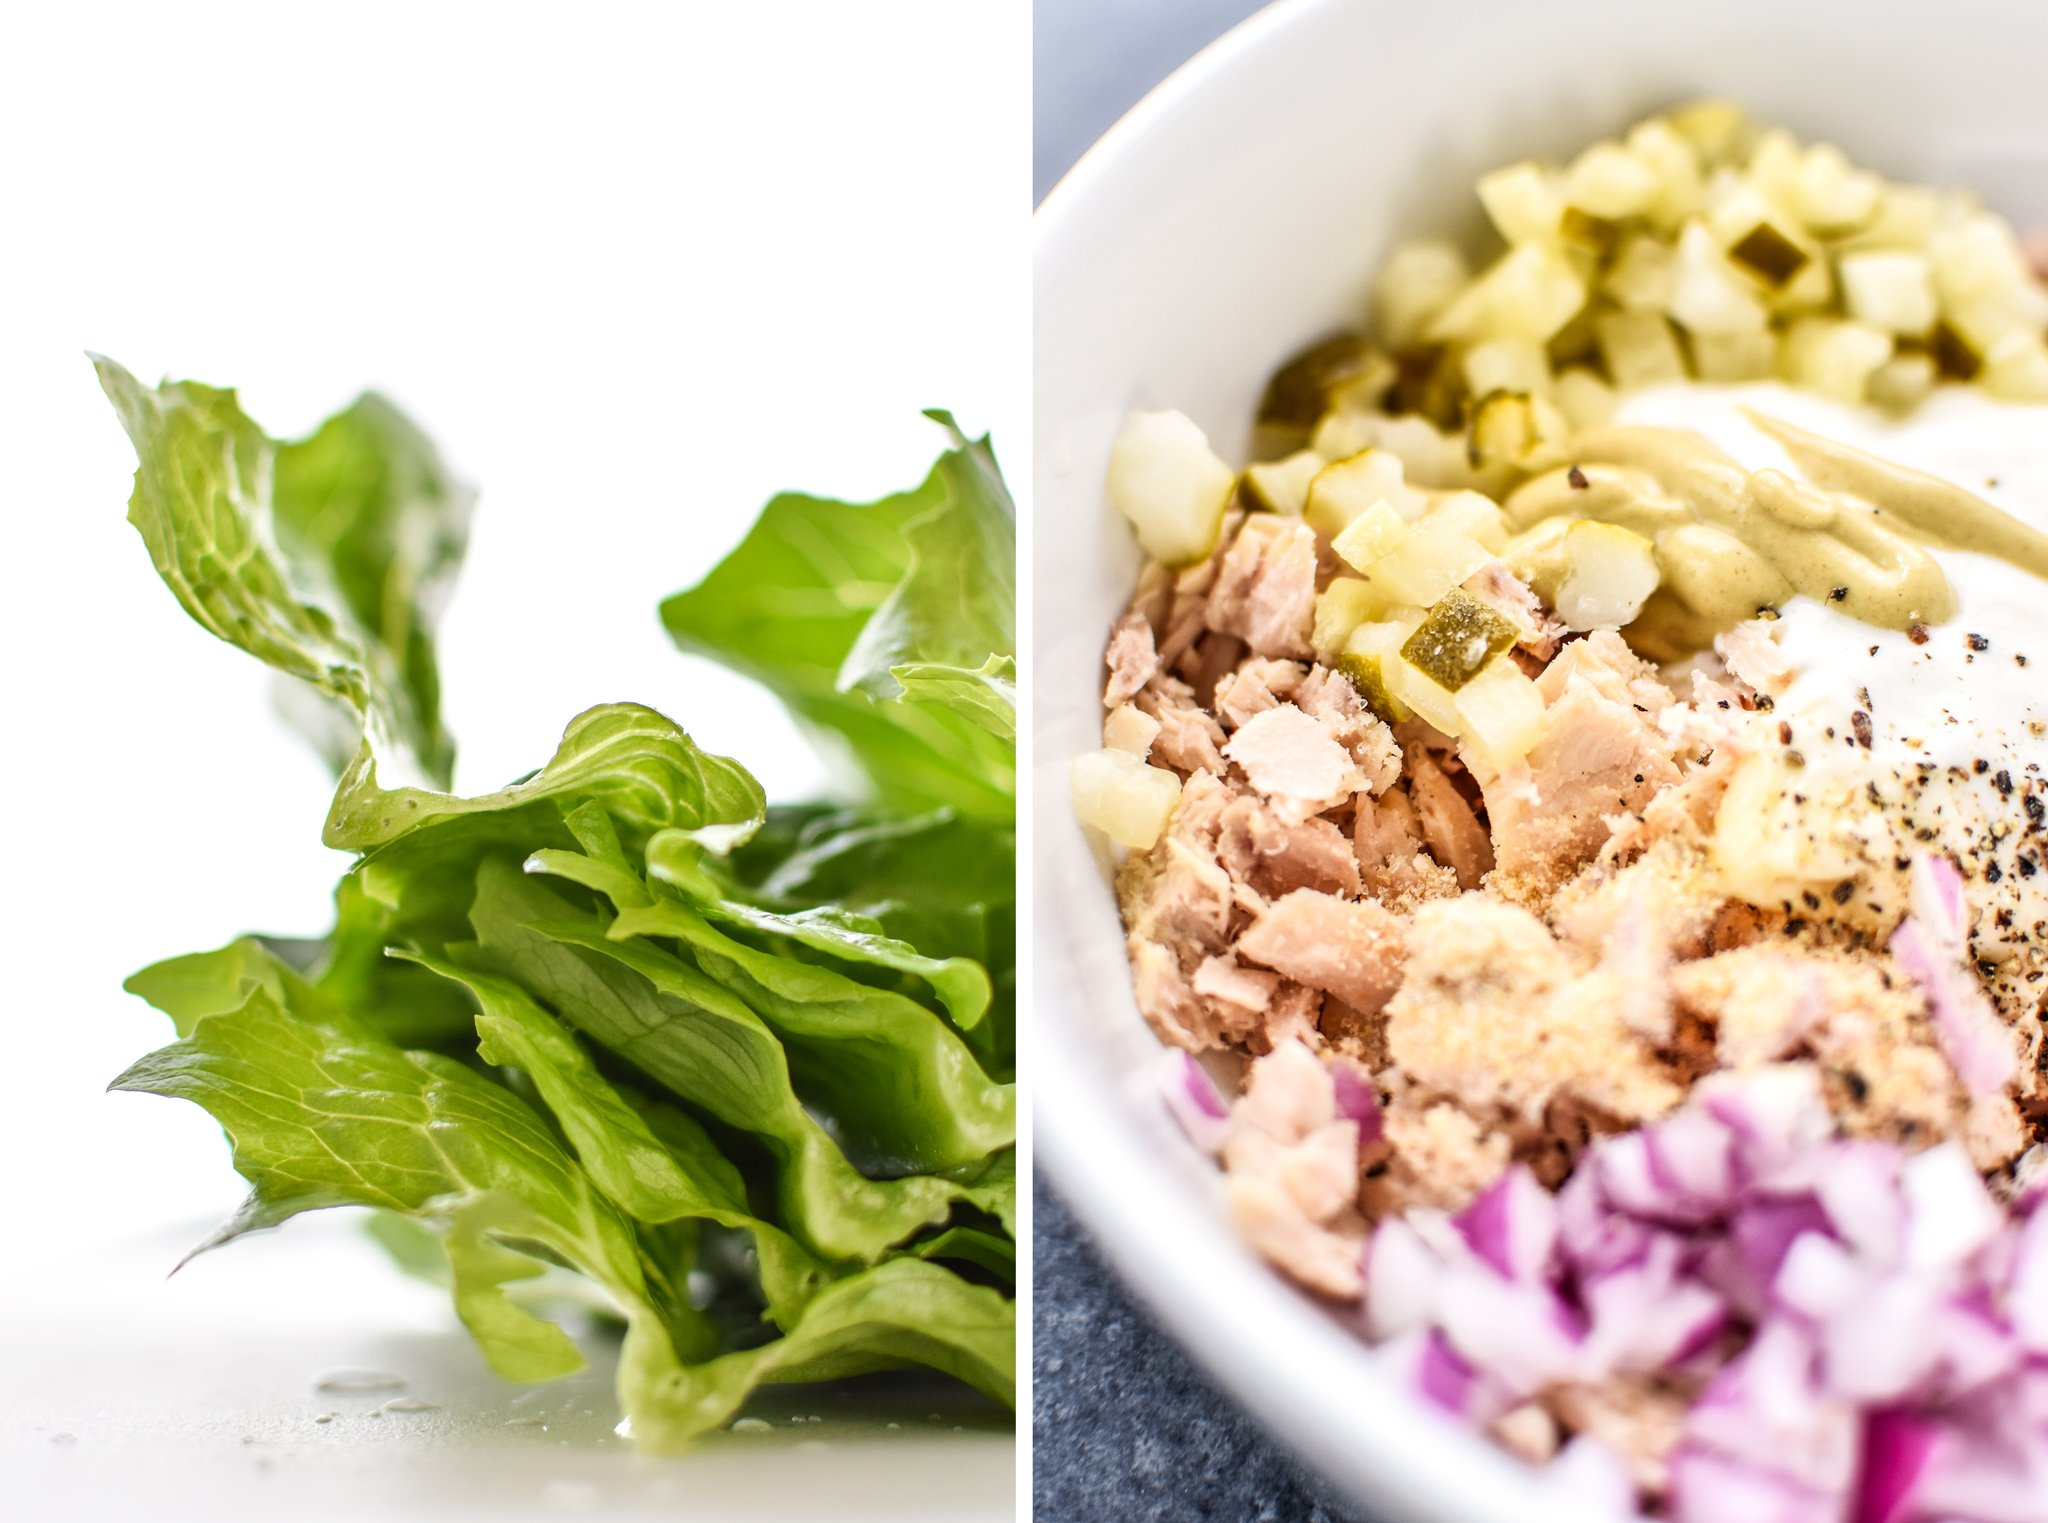 Left: Romaine lettuce laeves. RIght: Tuna Salad Lettuce Wraps Meal prep being prepared.